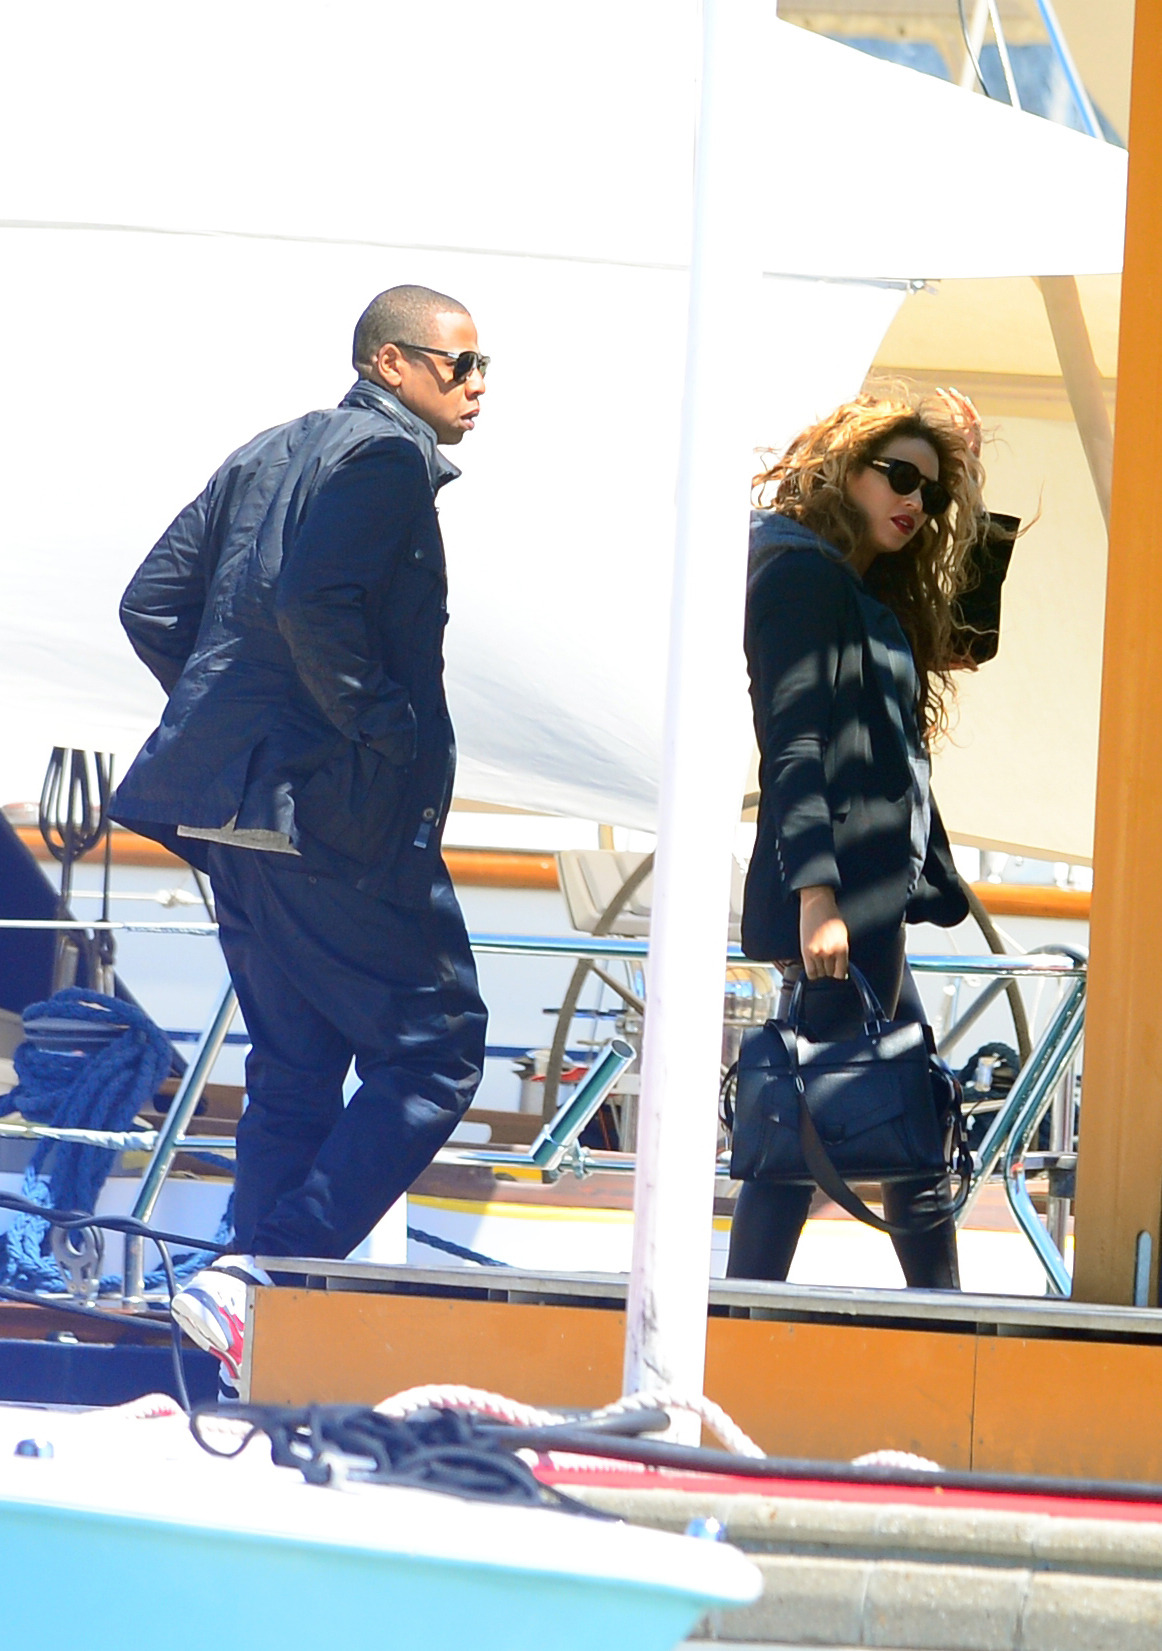 fashionsslut:   Beyoncé & Jay-Z in France (20/5)   Fashionsslut.tumblr.com